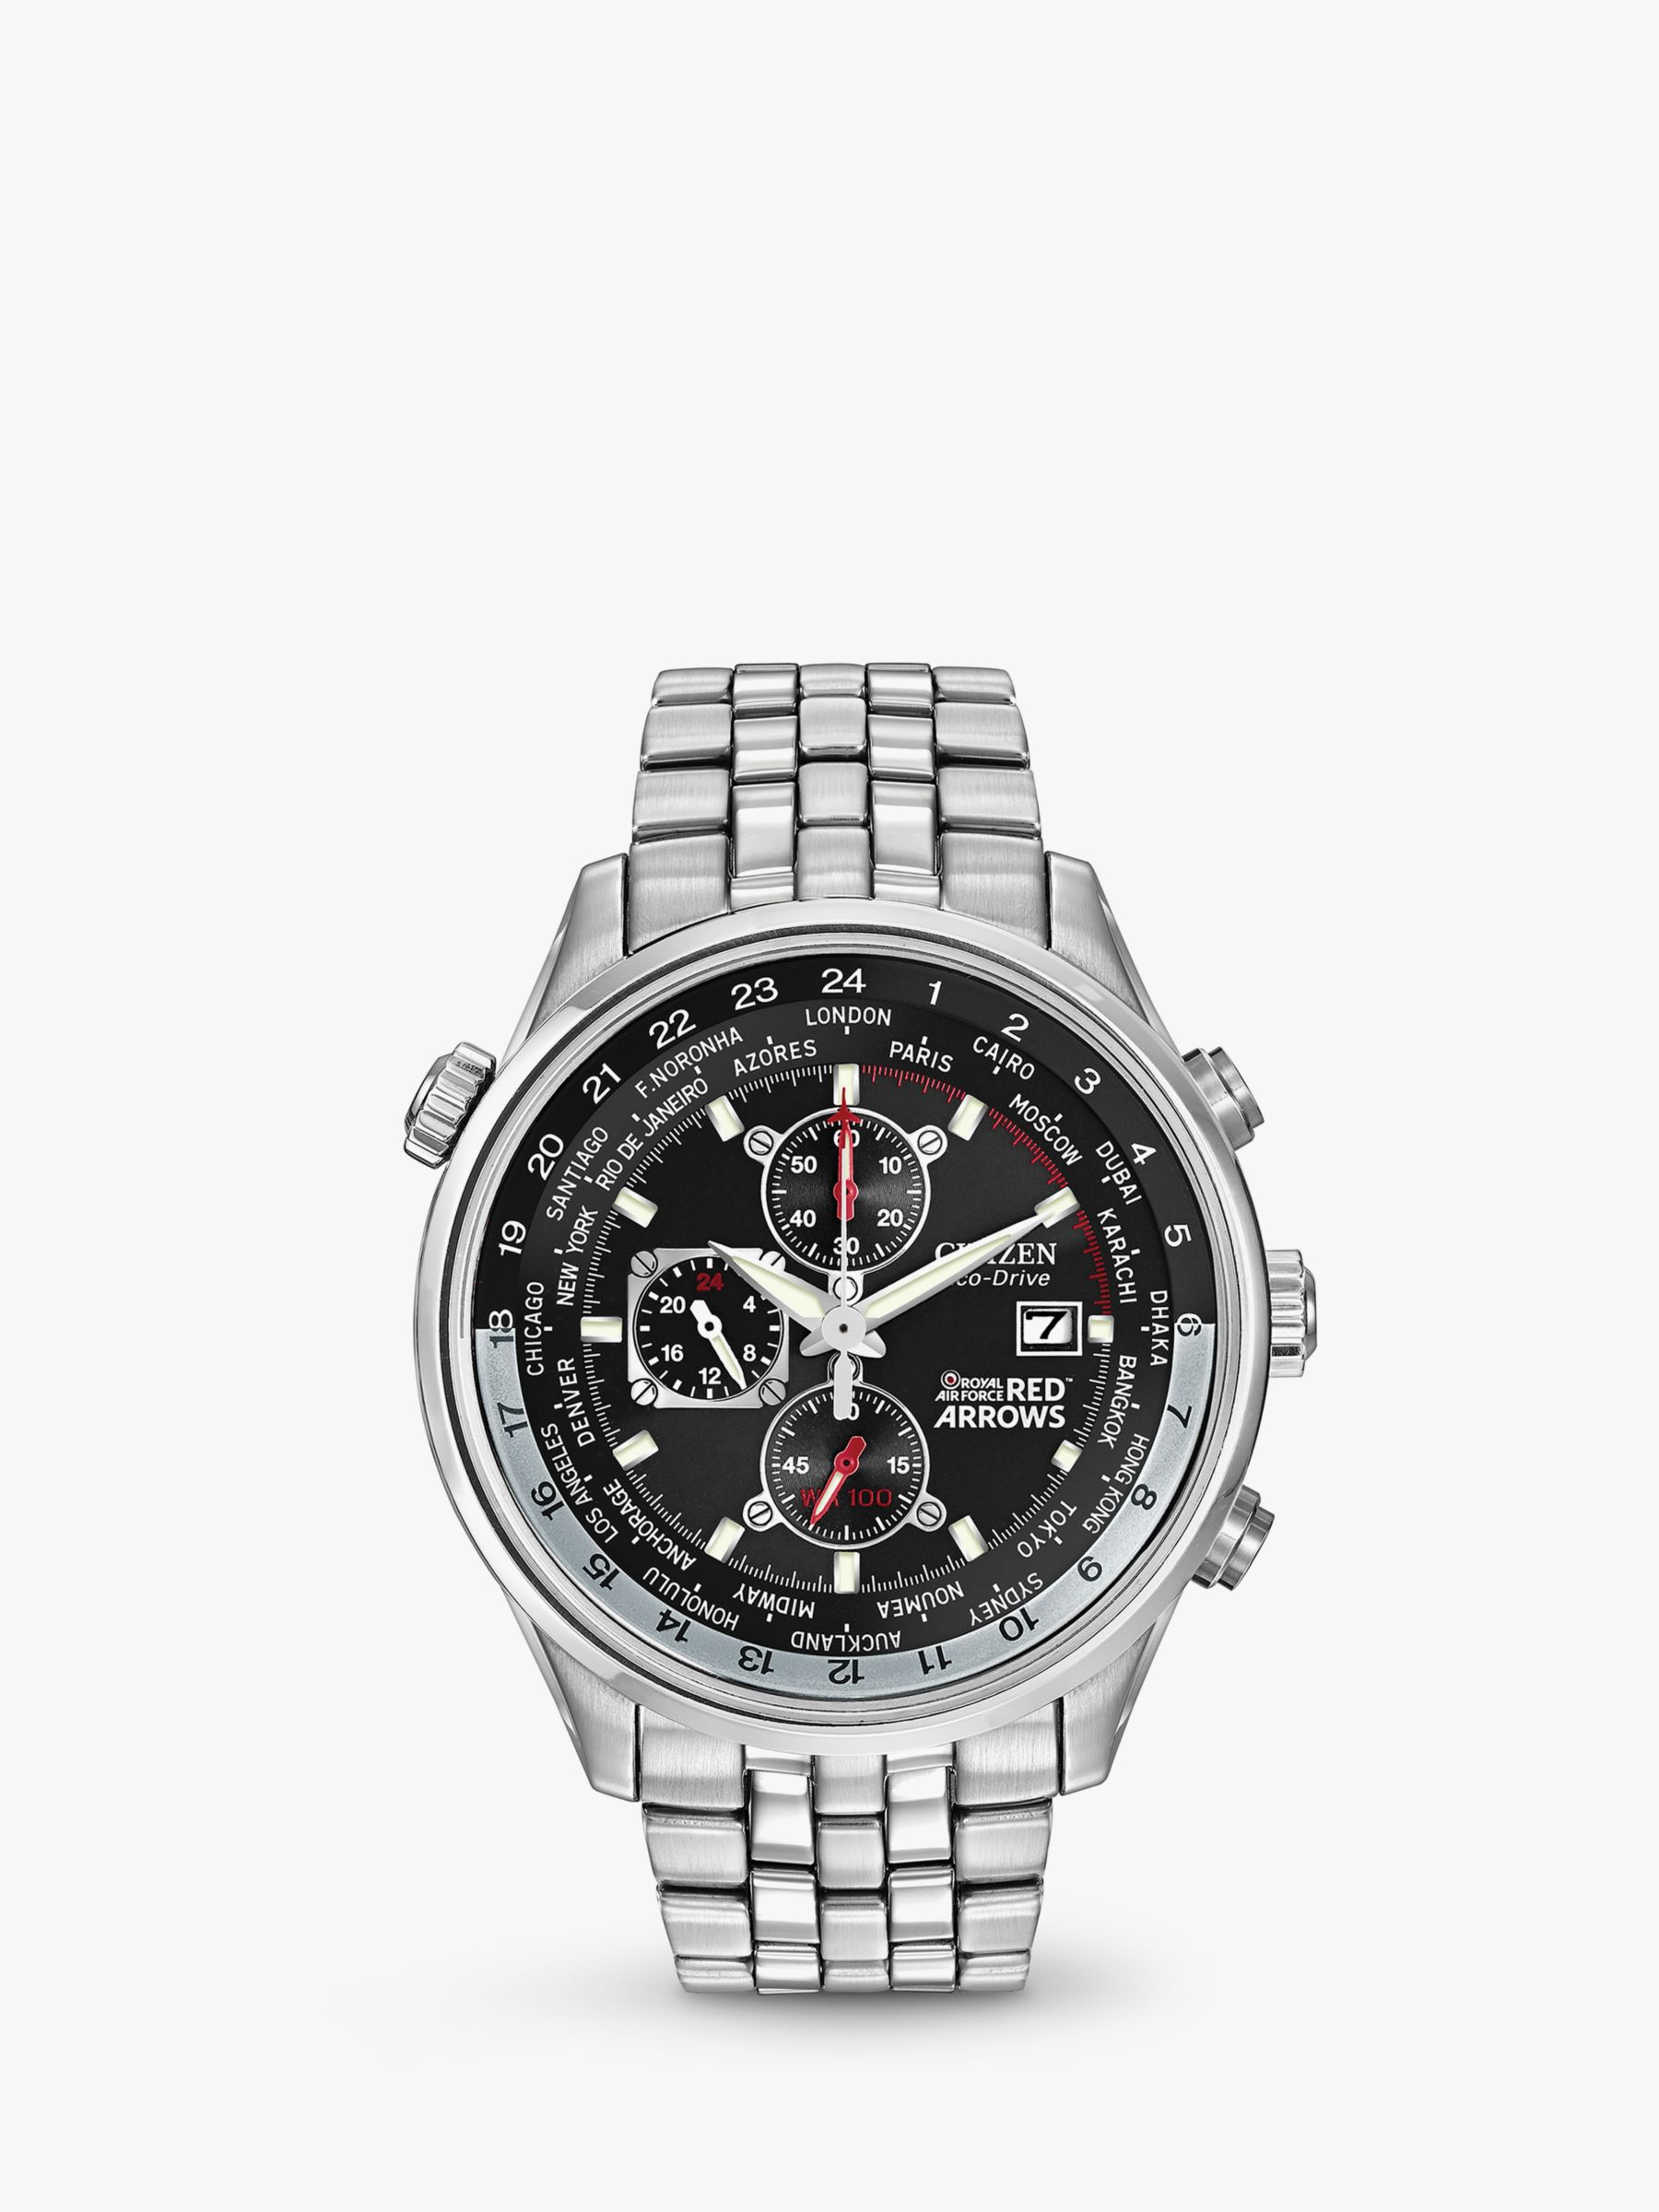 Citizen Citizen CA0080-54E Men's Red Arrows Chronograph Mesh Bracelet Strap Watch, Silver/Black